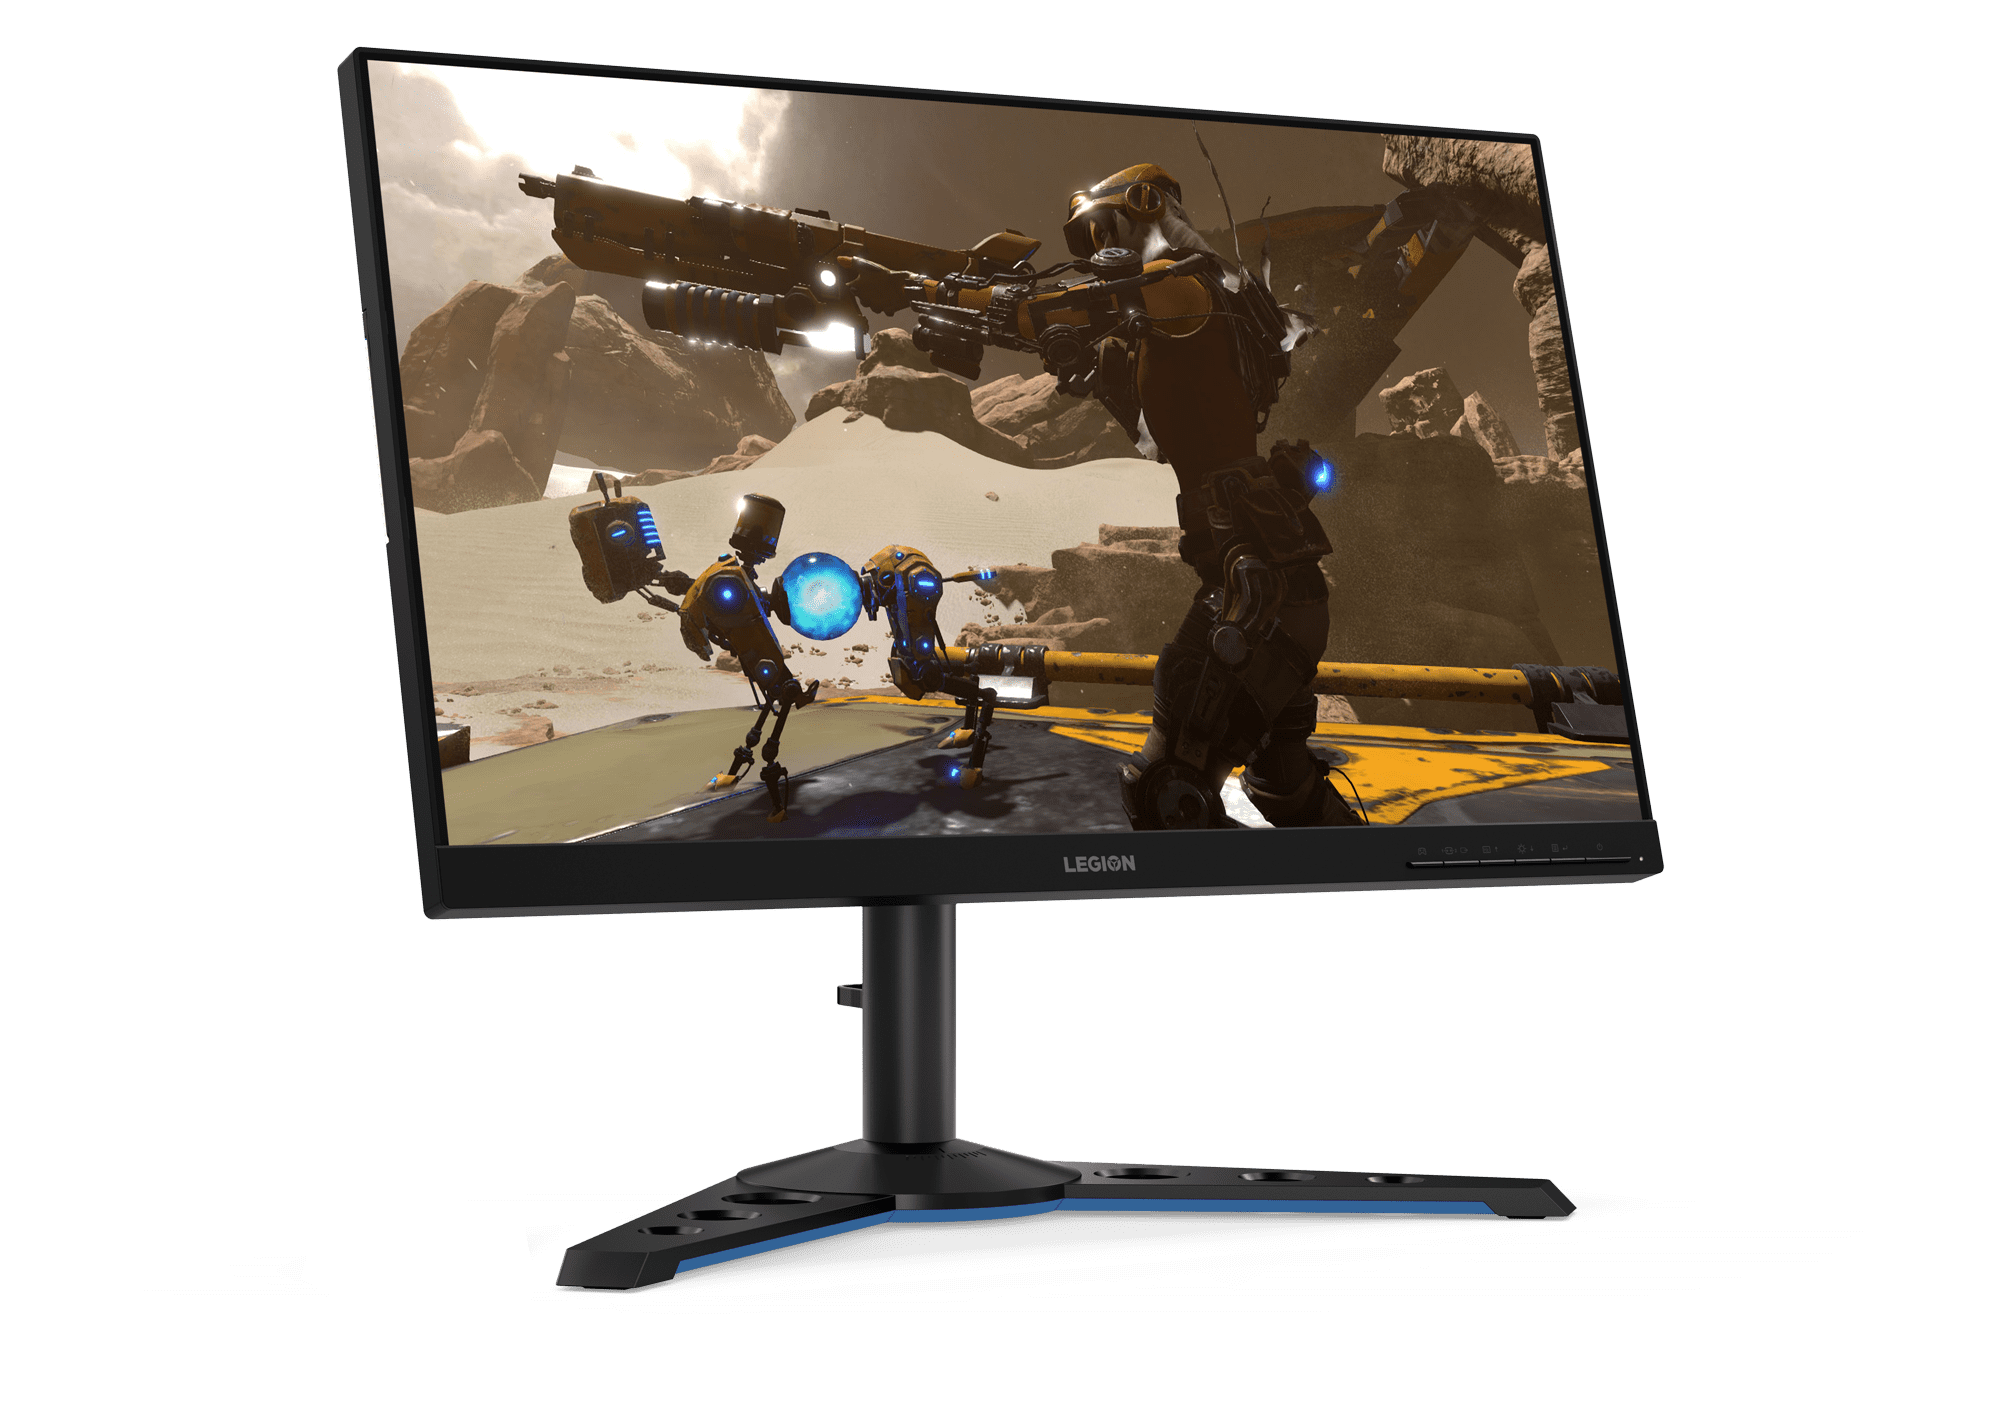 The Lenovo Legion Y25-25 Gaming Monitor